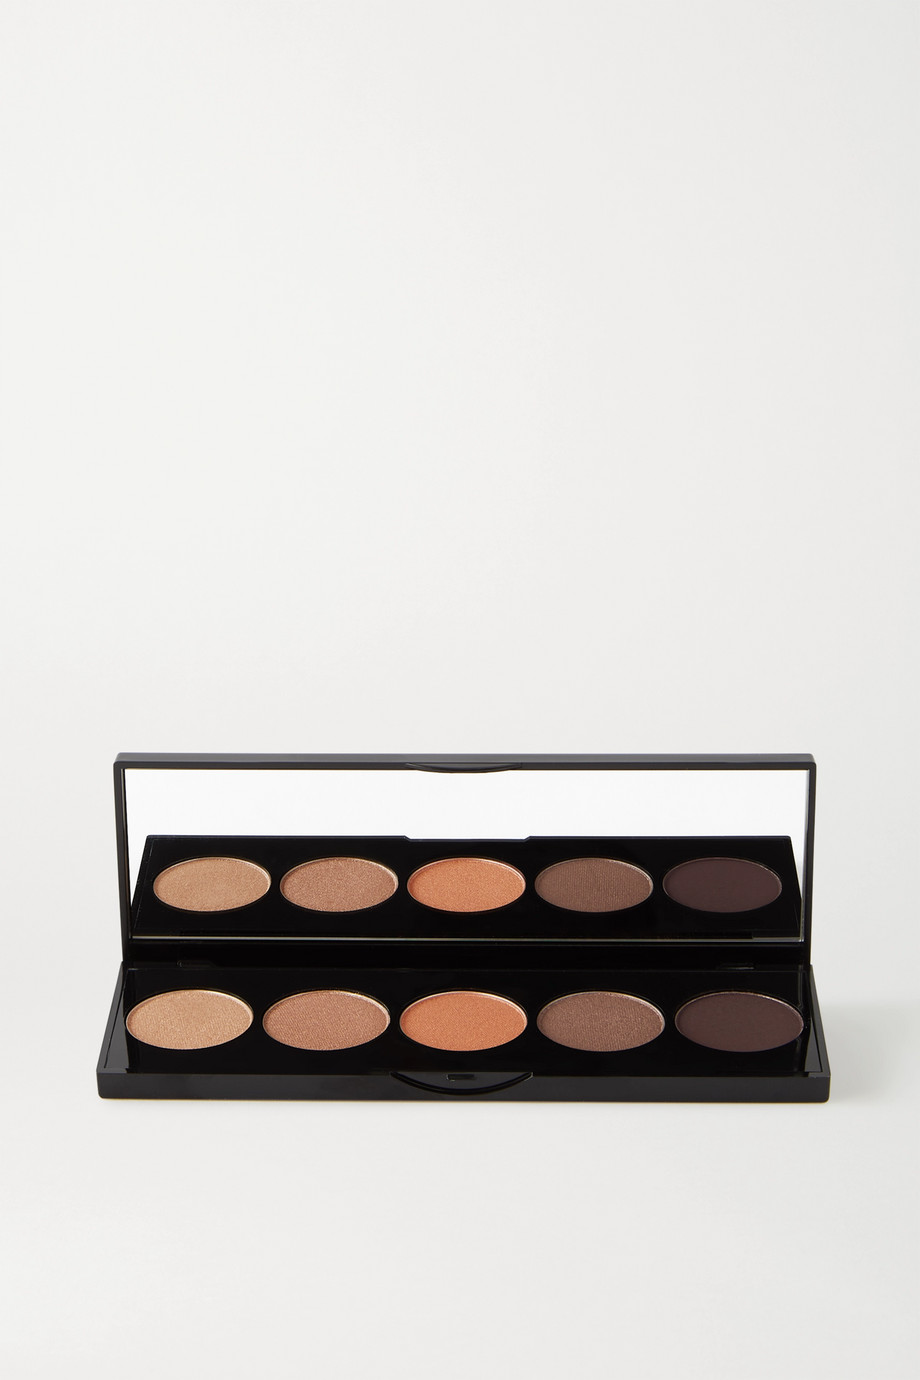 Bobbi Brown Eye Shadow Palette – Golden Nudes – Lidschattenpalette